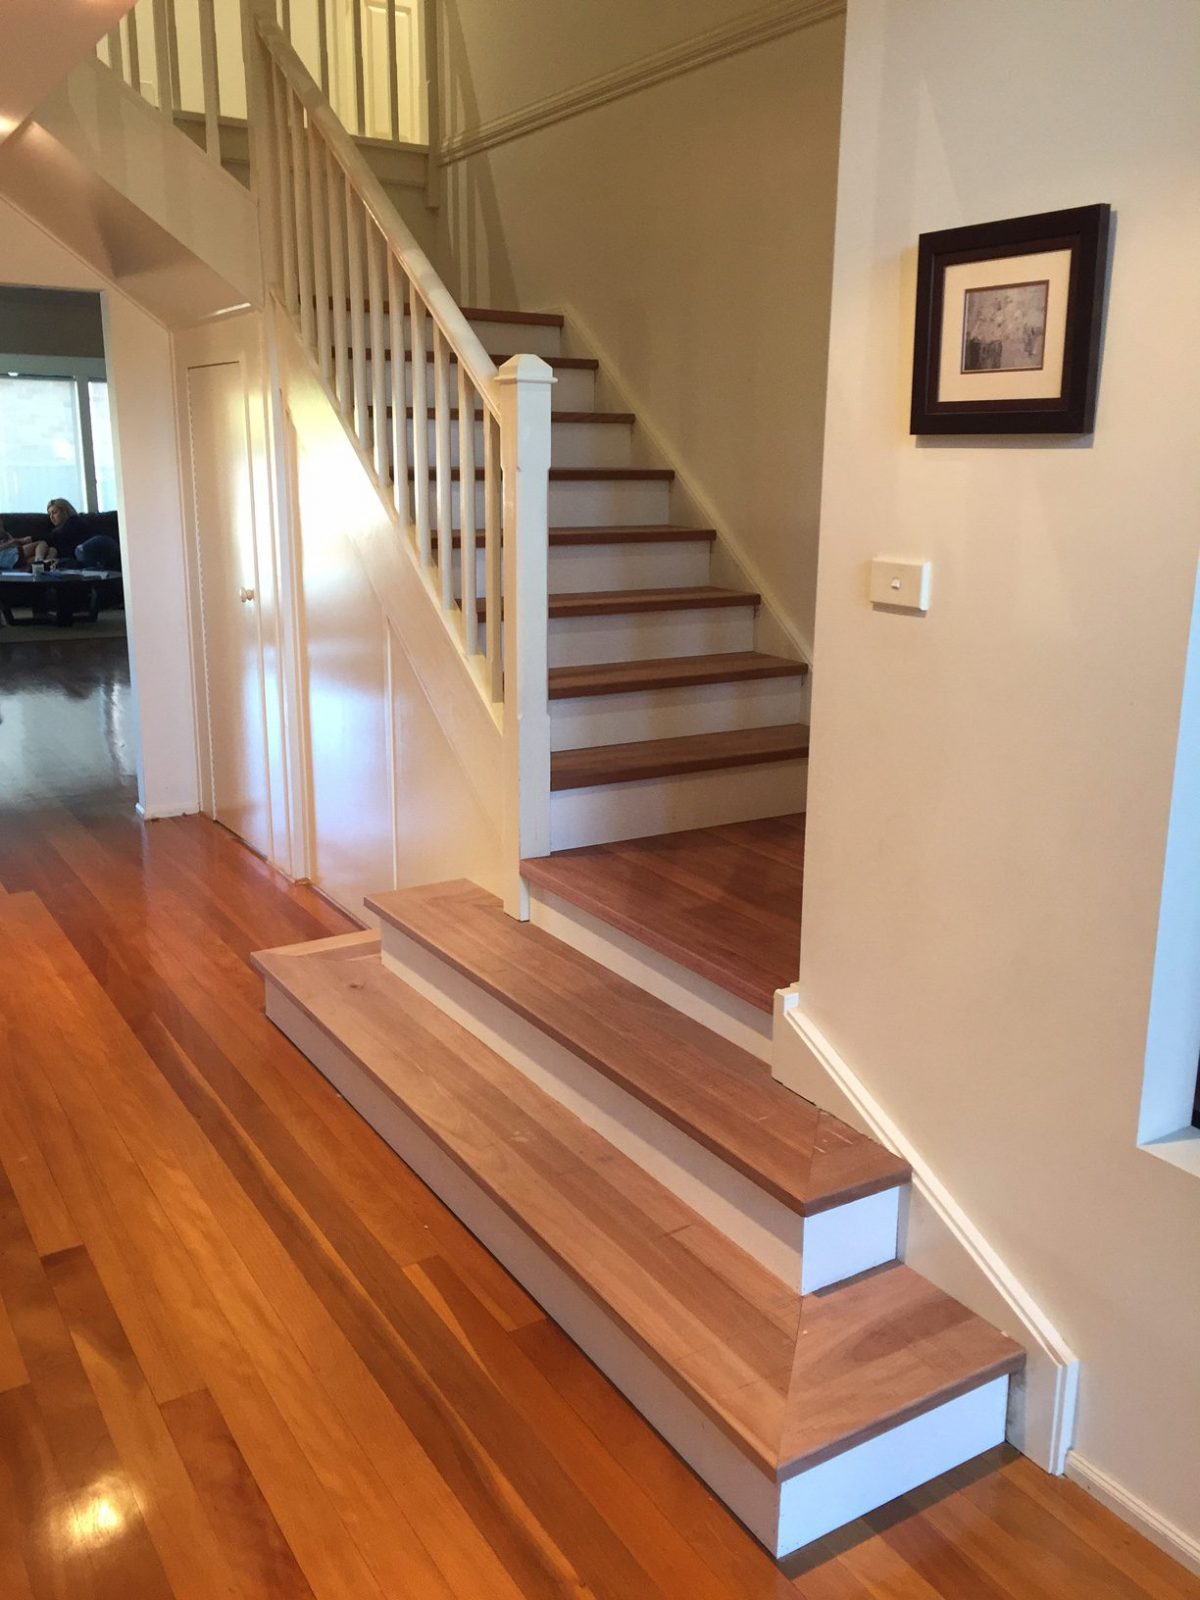 Staircase makeover - after photo by Timber Floors Pty Ltd #staircase #makeover #renovation